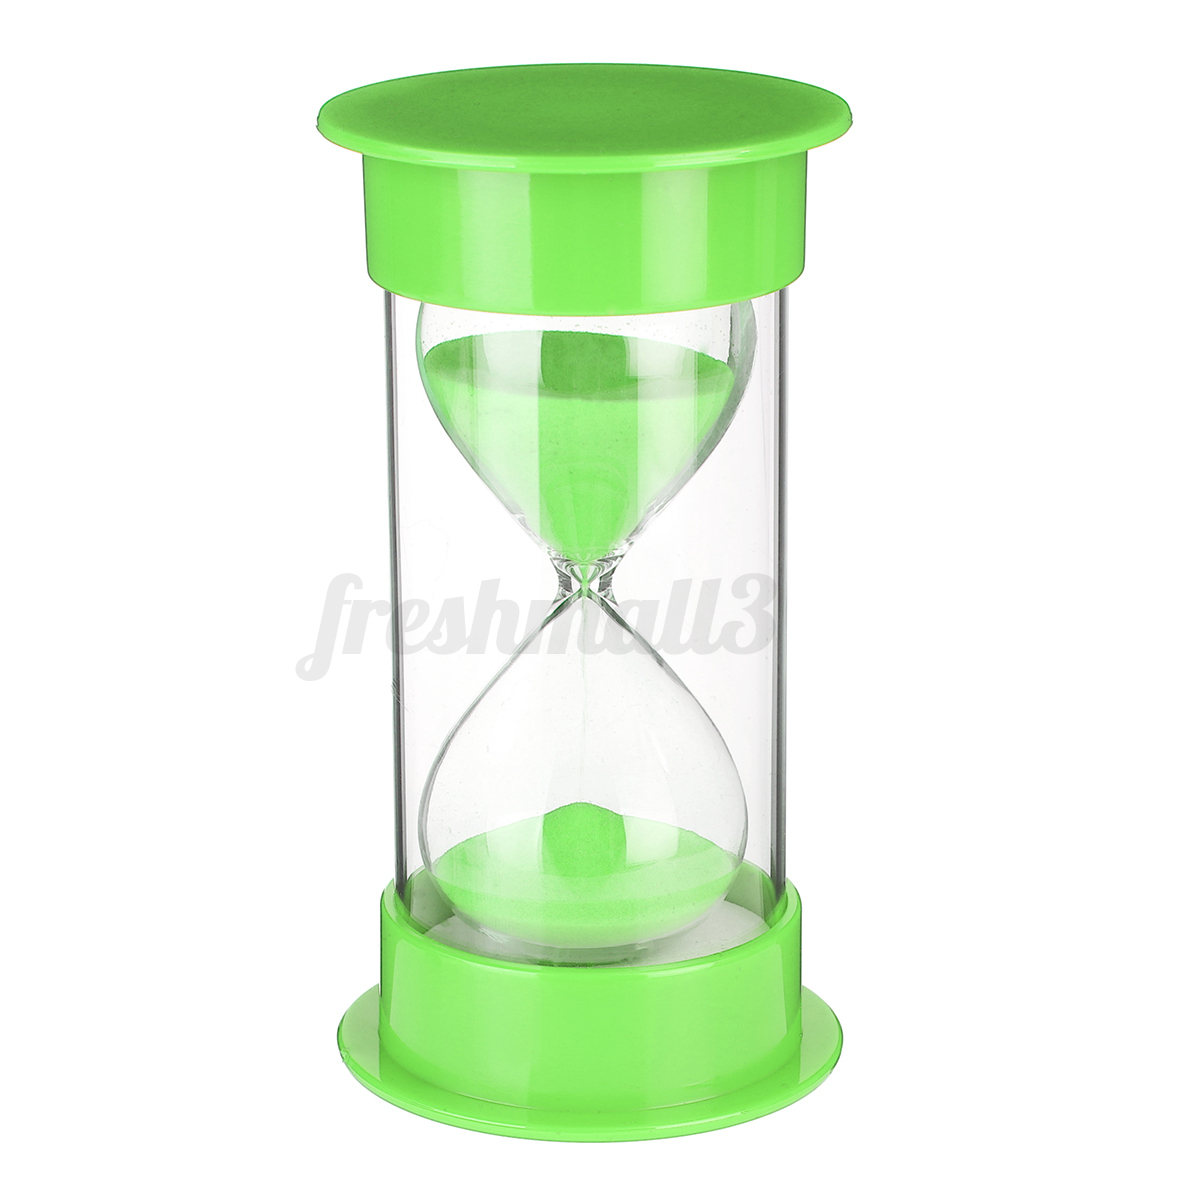 LilysHome Hourglass Sand Timer - 20 Minute, Cherry Finish: The Hourglass Sand Timer is an elegant, impressive accessory for your desk. This large hourglass is encased Manufacturer: LilysHome.